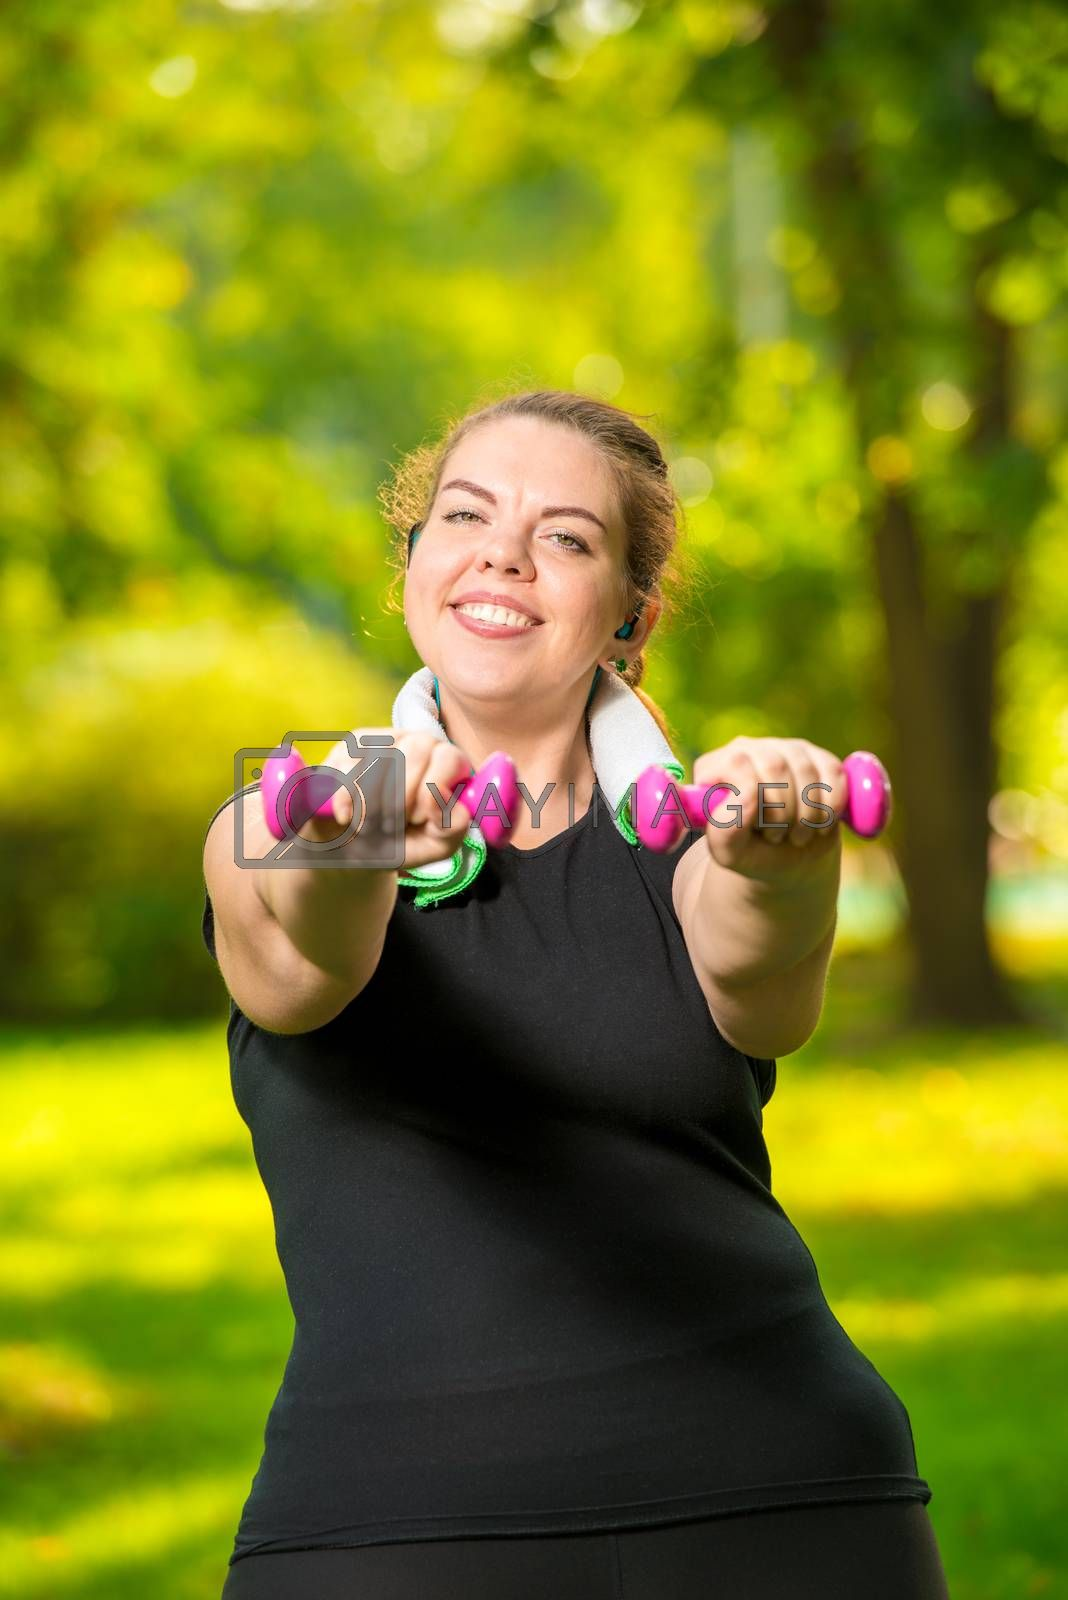 overweight woman doing her exercise in the park, exercise with d by Labunskiy K.